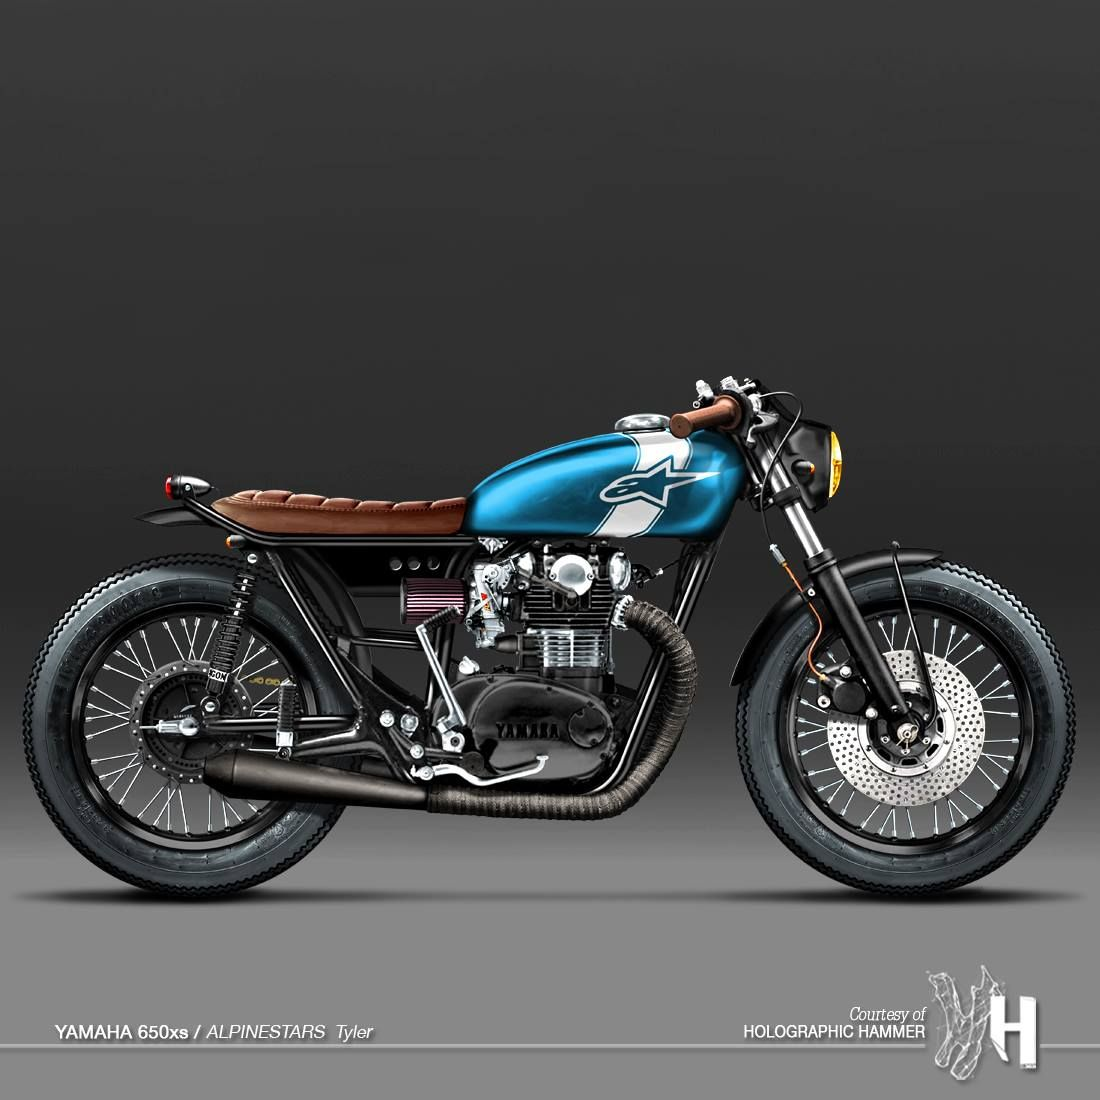 caf racer objectif cafe racers pinterest cafe racers. Black Bedroom Furniture Sets. Home Design Ideas